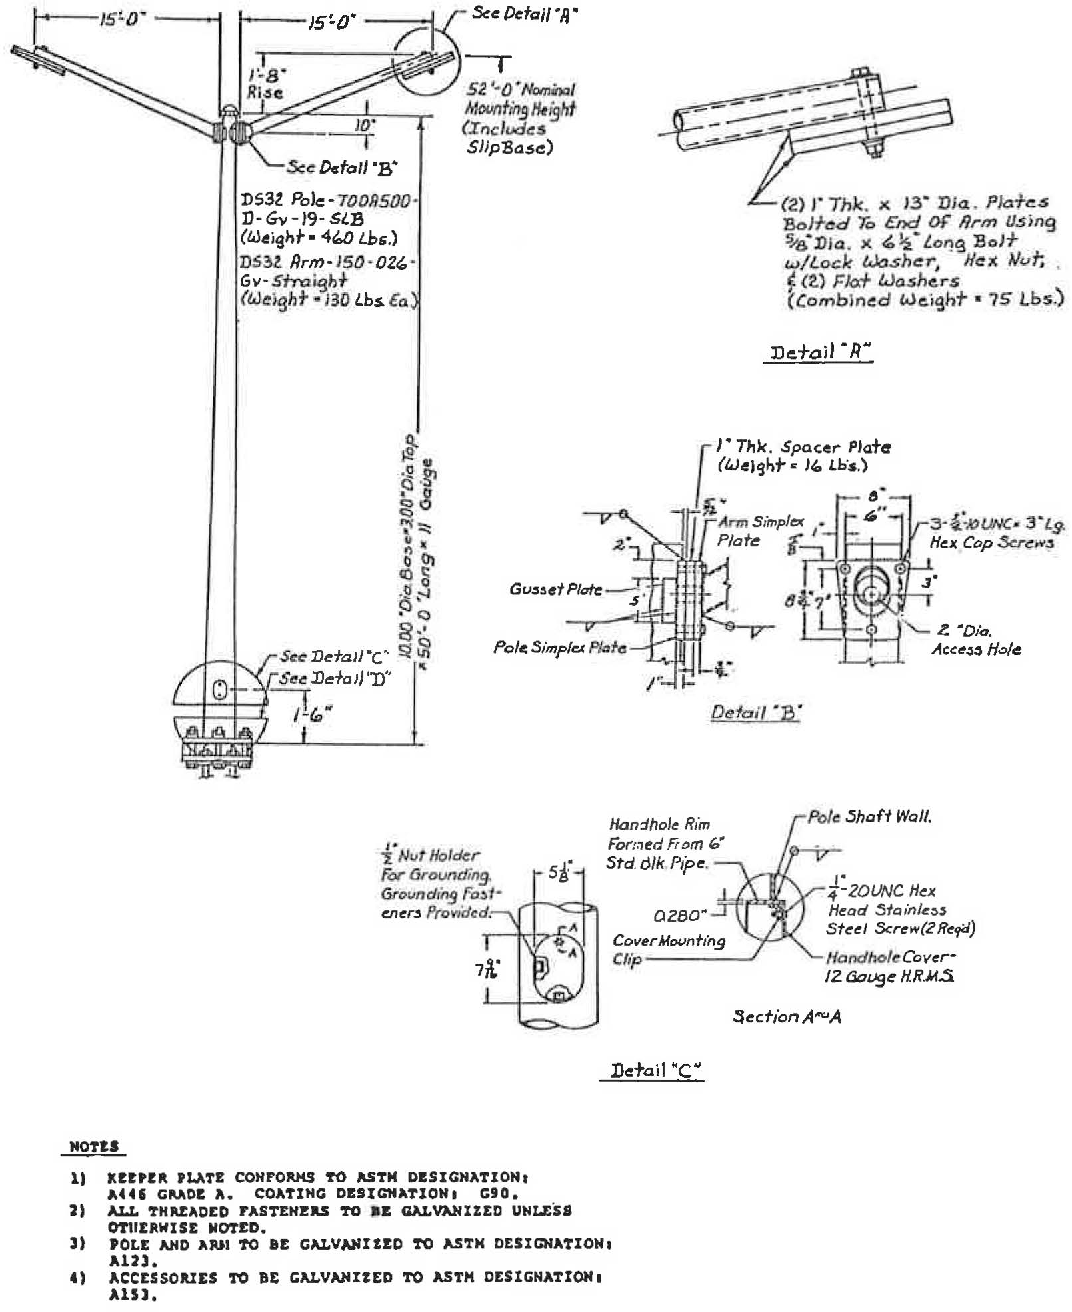 PDF] FULL-SCALE CRASH TESTS ON A LUMINAIRE SUPPORT 4-BOLT